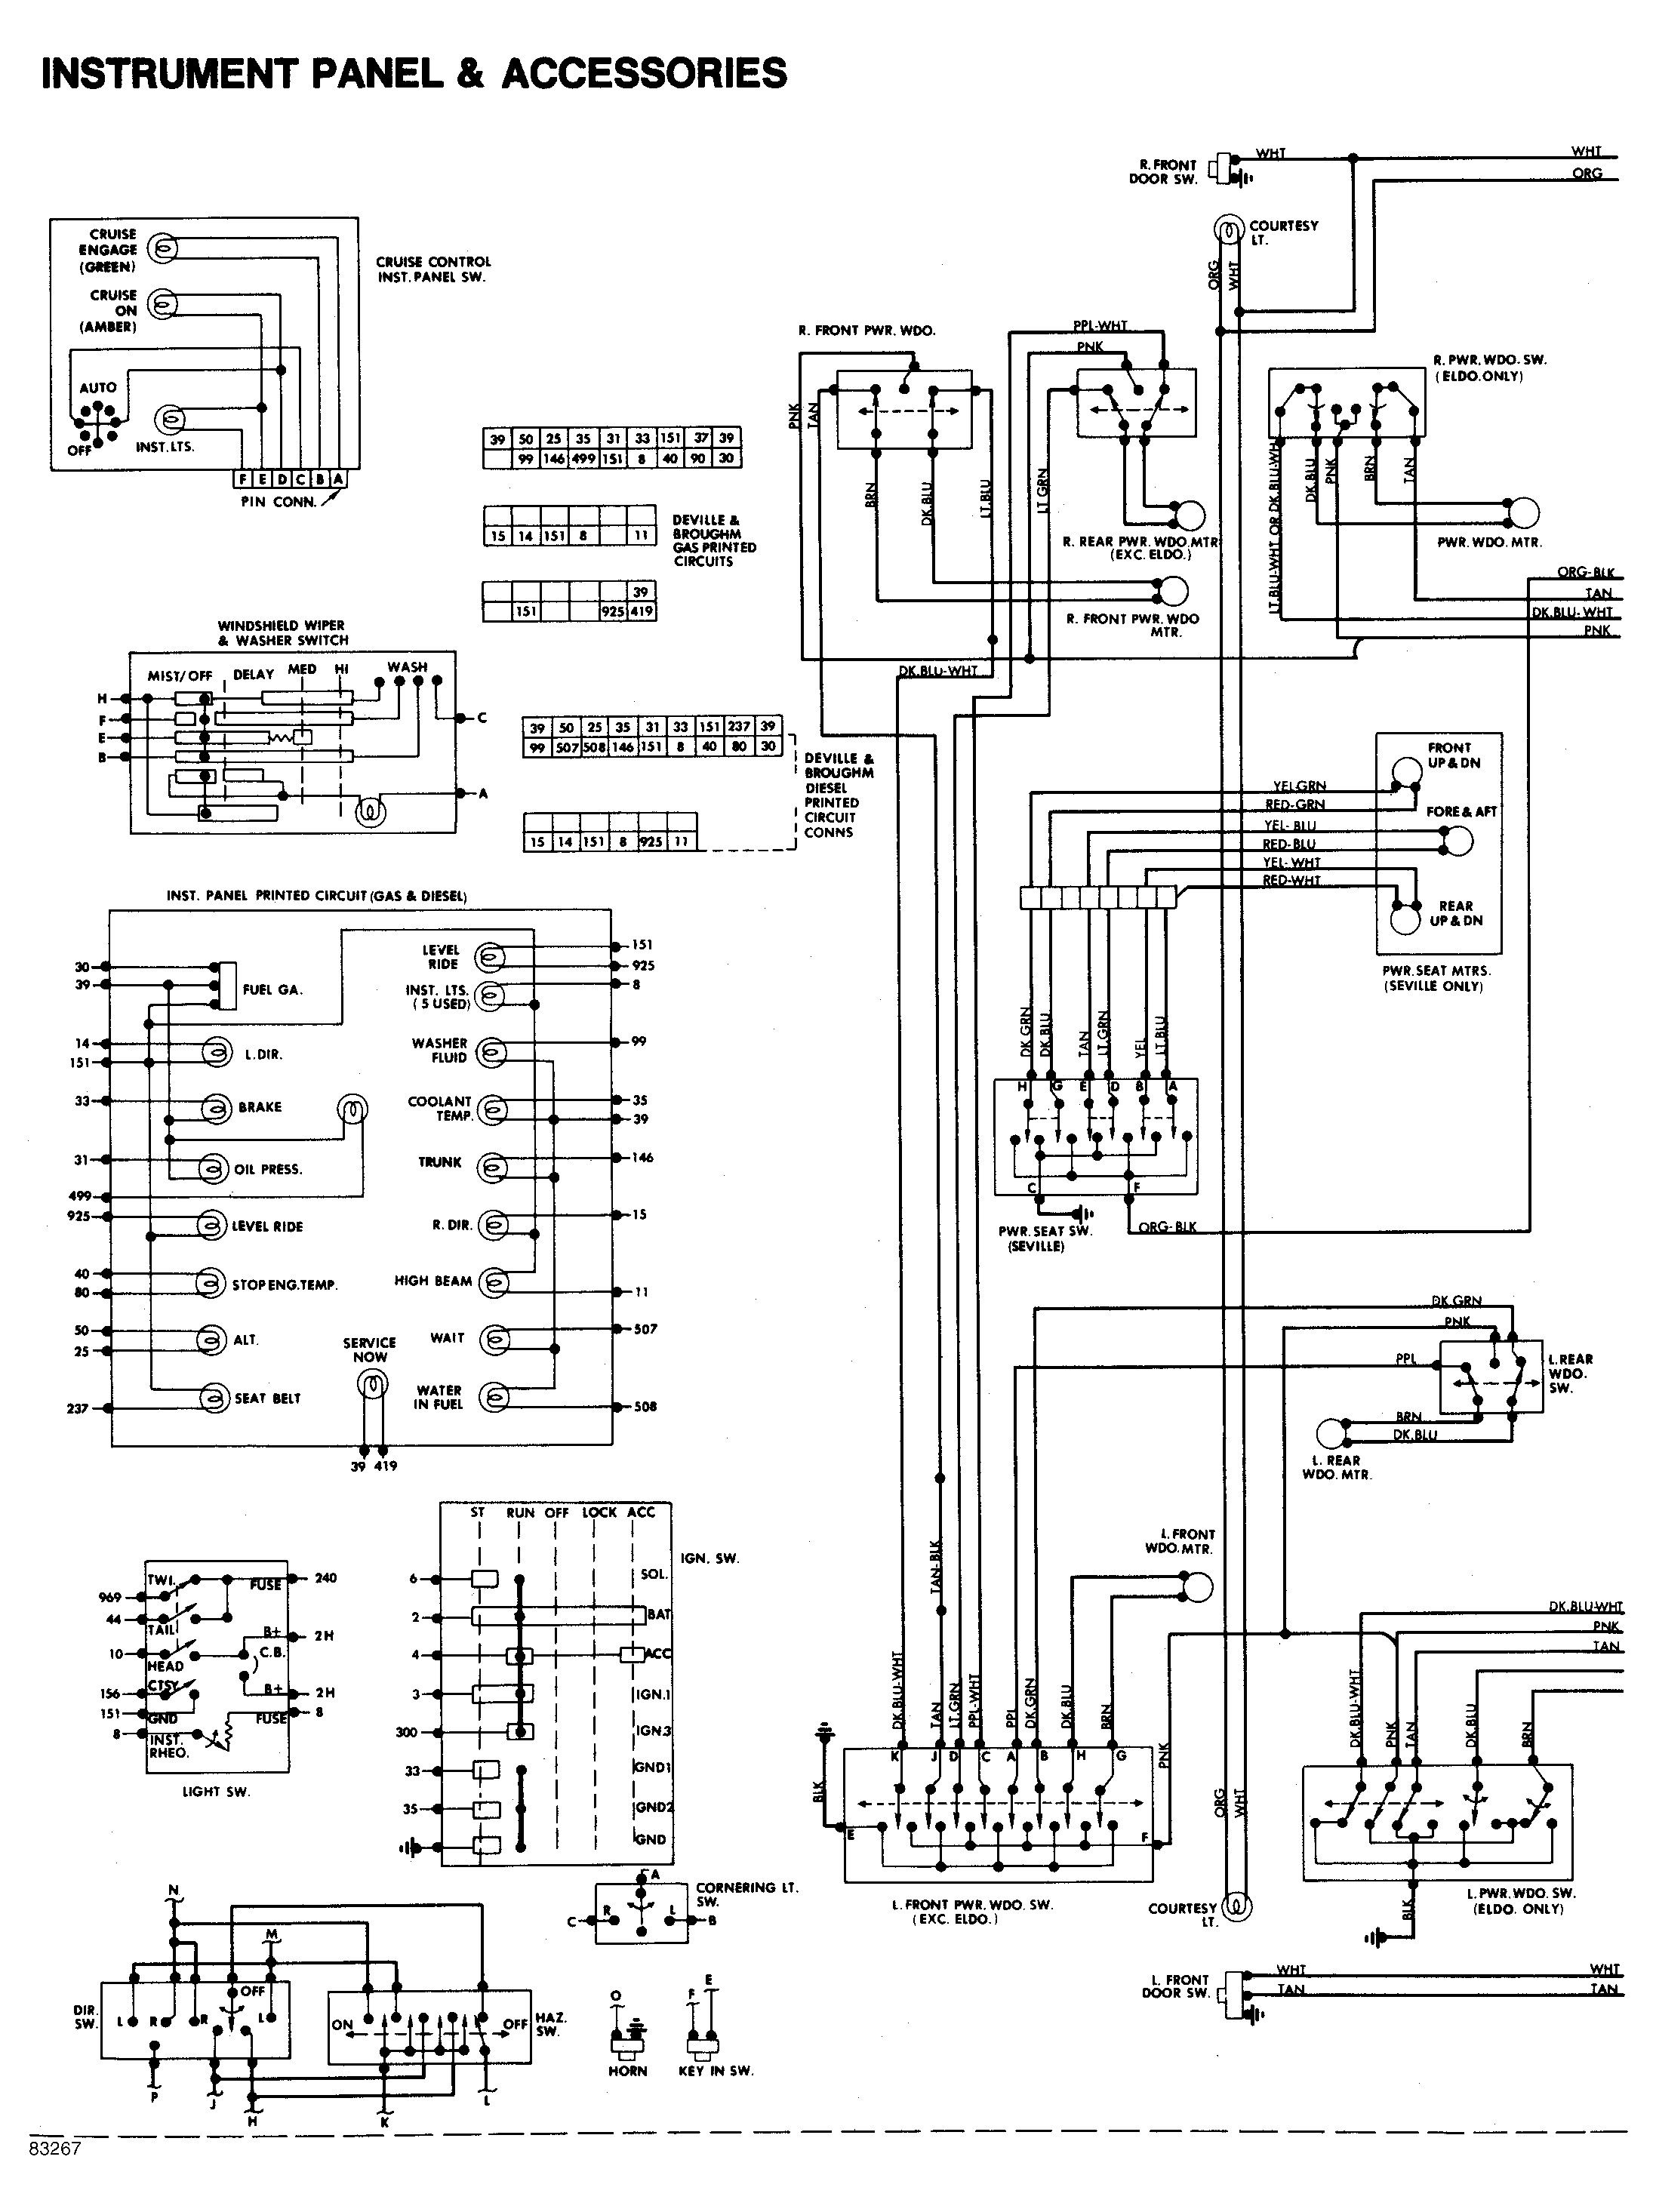 74 international wiring diagram wiring diagram datasource 1974 international harvester wiring diagram wiring diagram compilation 74 [ 2194 x 2931 Pixel ]